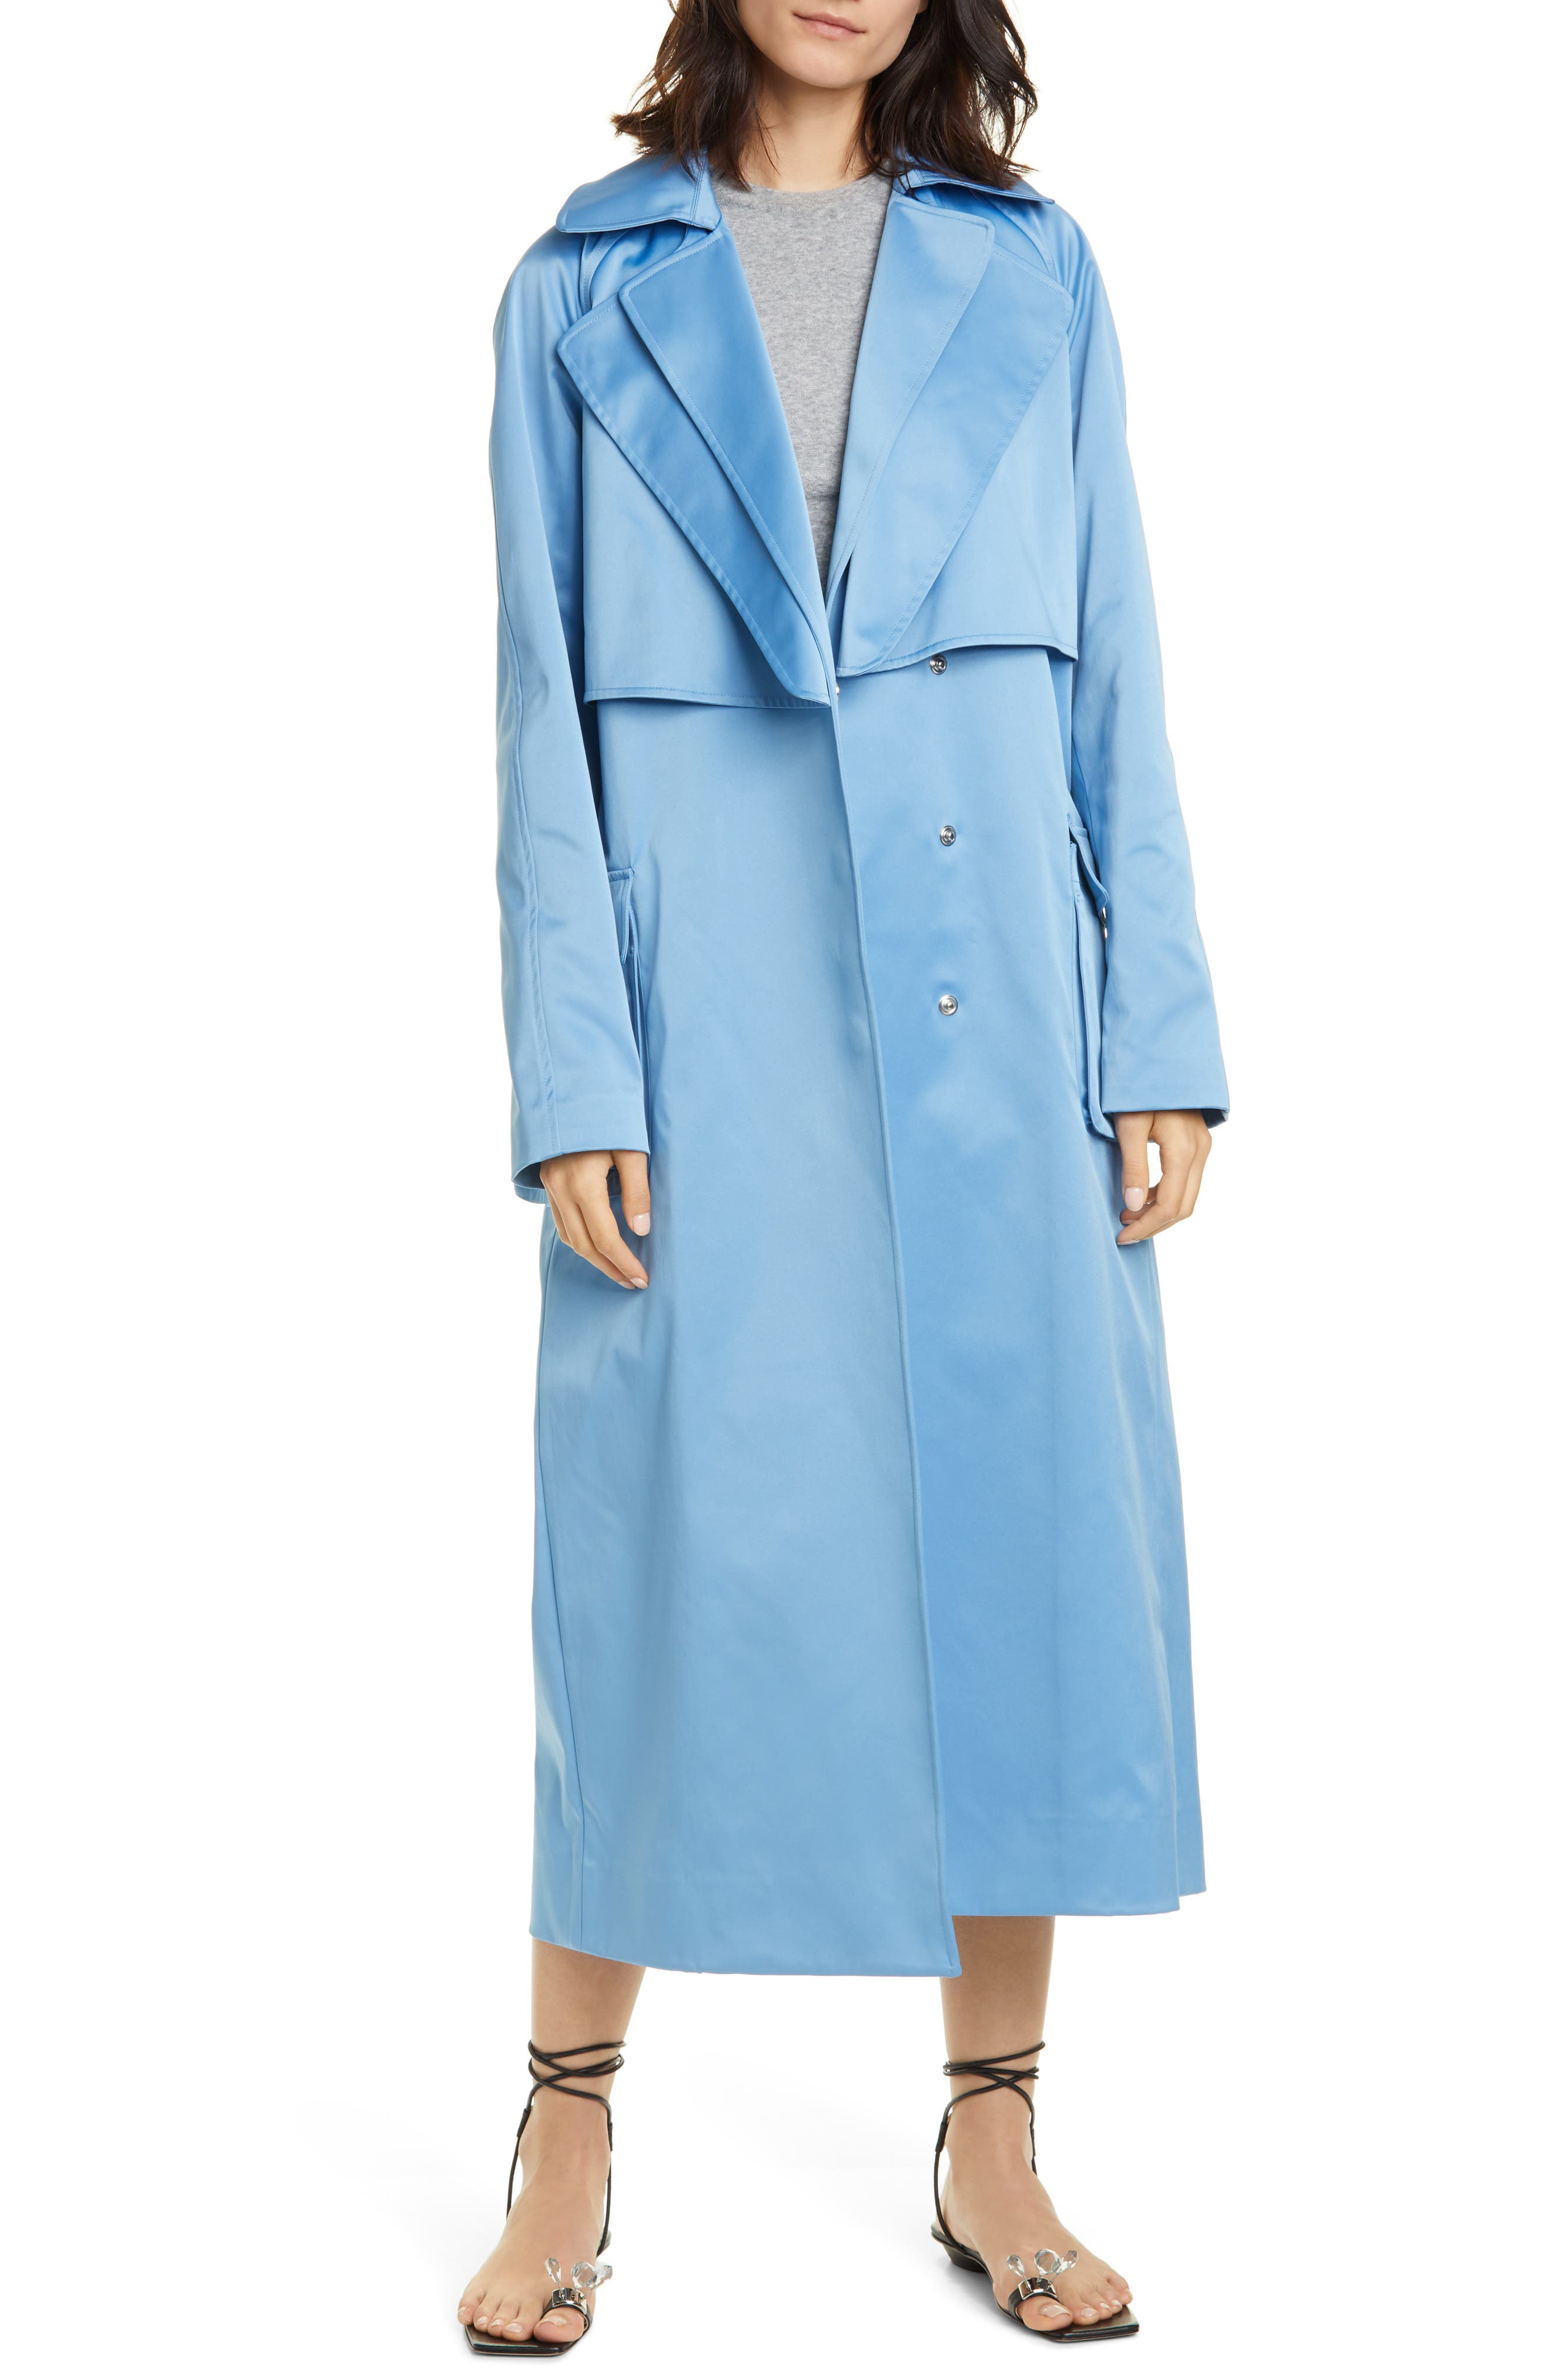 Signature doubled lapels detail an Italian-duchesse satin trench in a lovely sky-blue color perfect for pairing with your fresh-for-the-season wardrobe. Style Name: Tibi Duchesse Tech Satin Trench Coat. Style Number: 5991842. Available in stores.